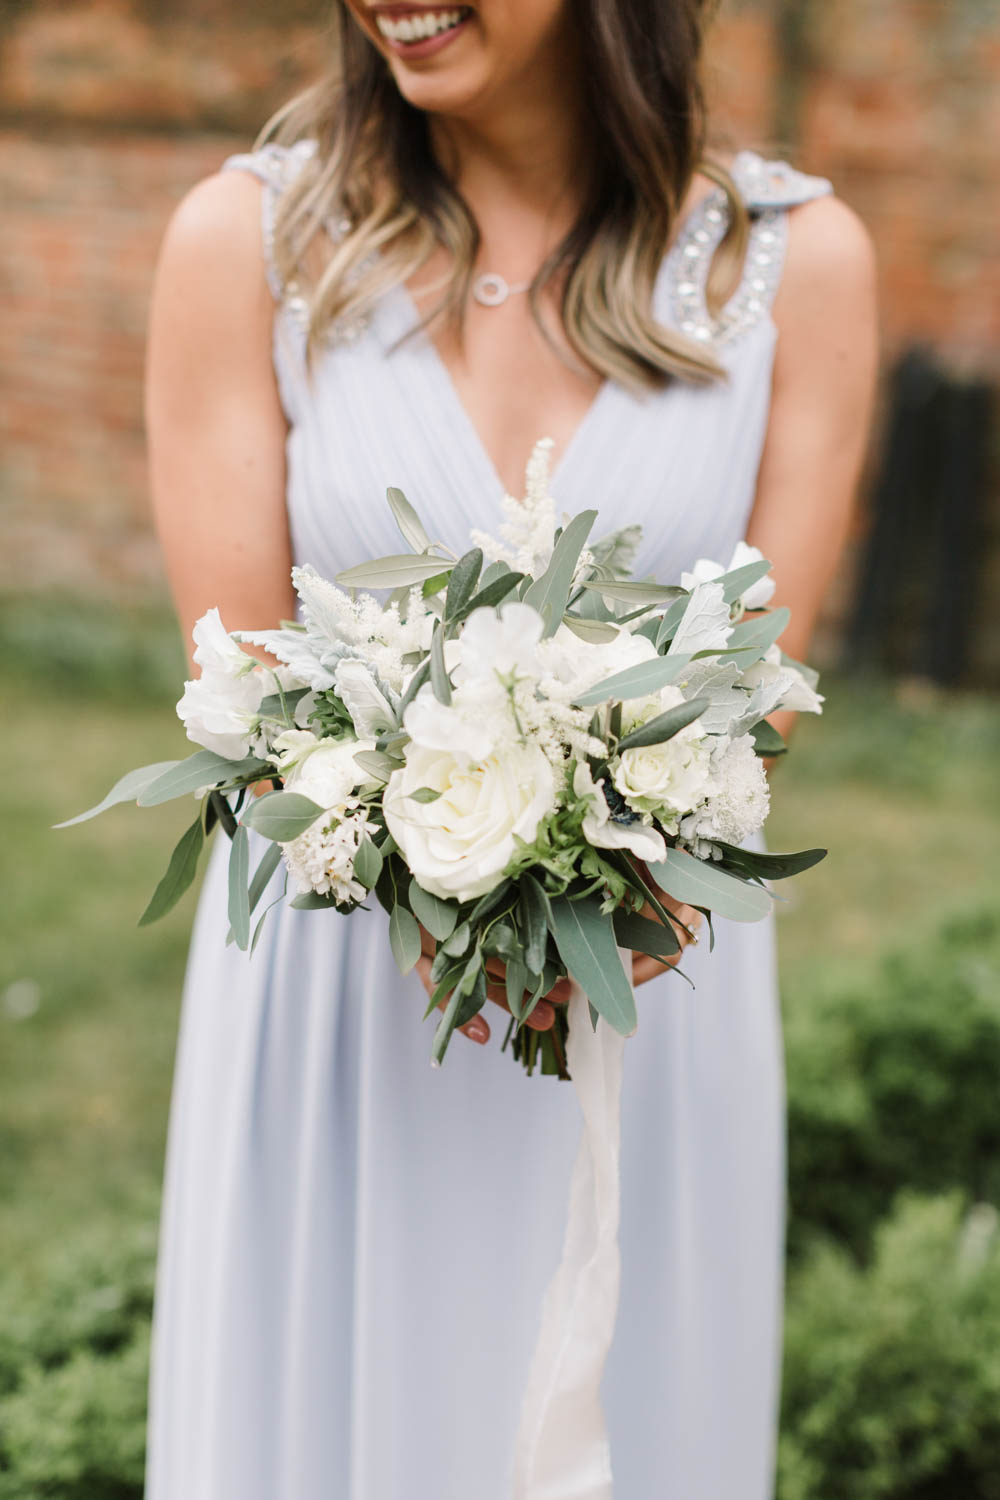 Bouquet Flowers Bride Bridal Olive Ranunculus Rose Anemone Astilbe Foliage Eucaluptus Dusty Miller Dove Grey Wedding Danielle Smith Photography